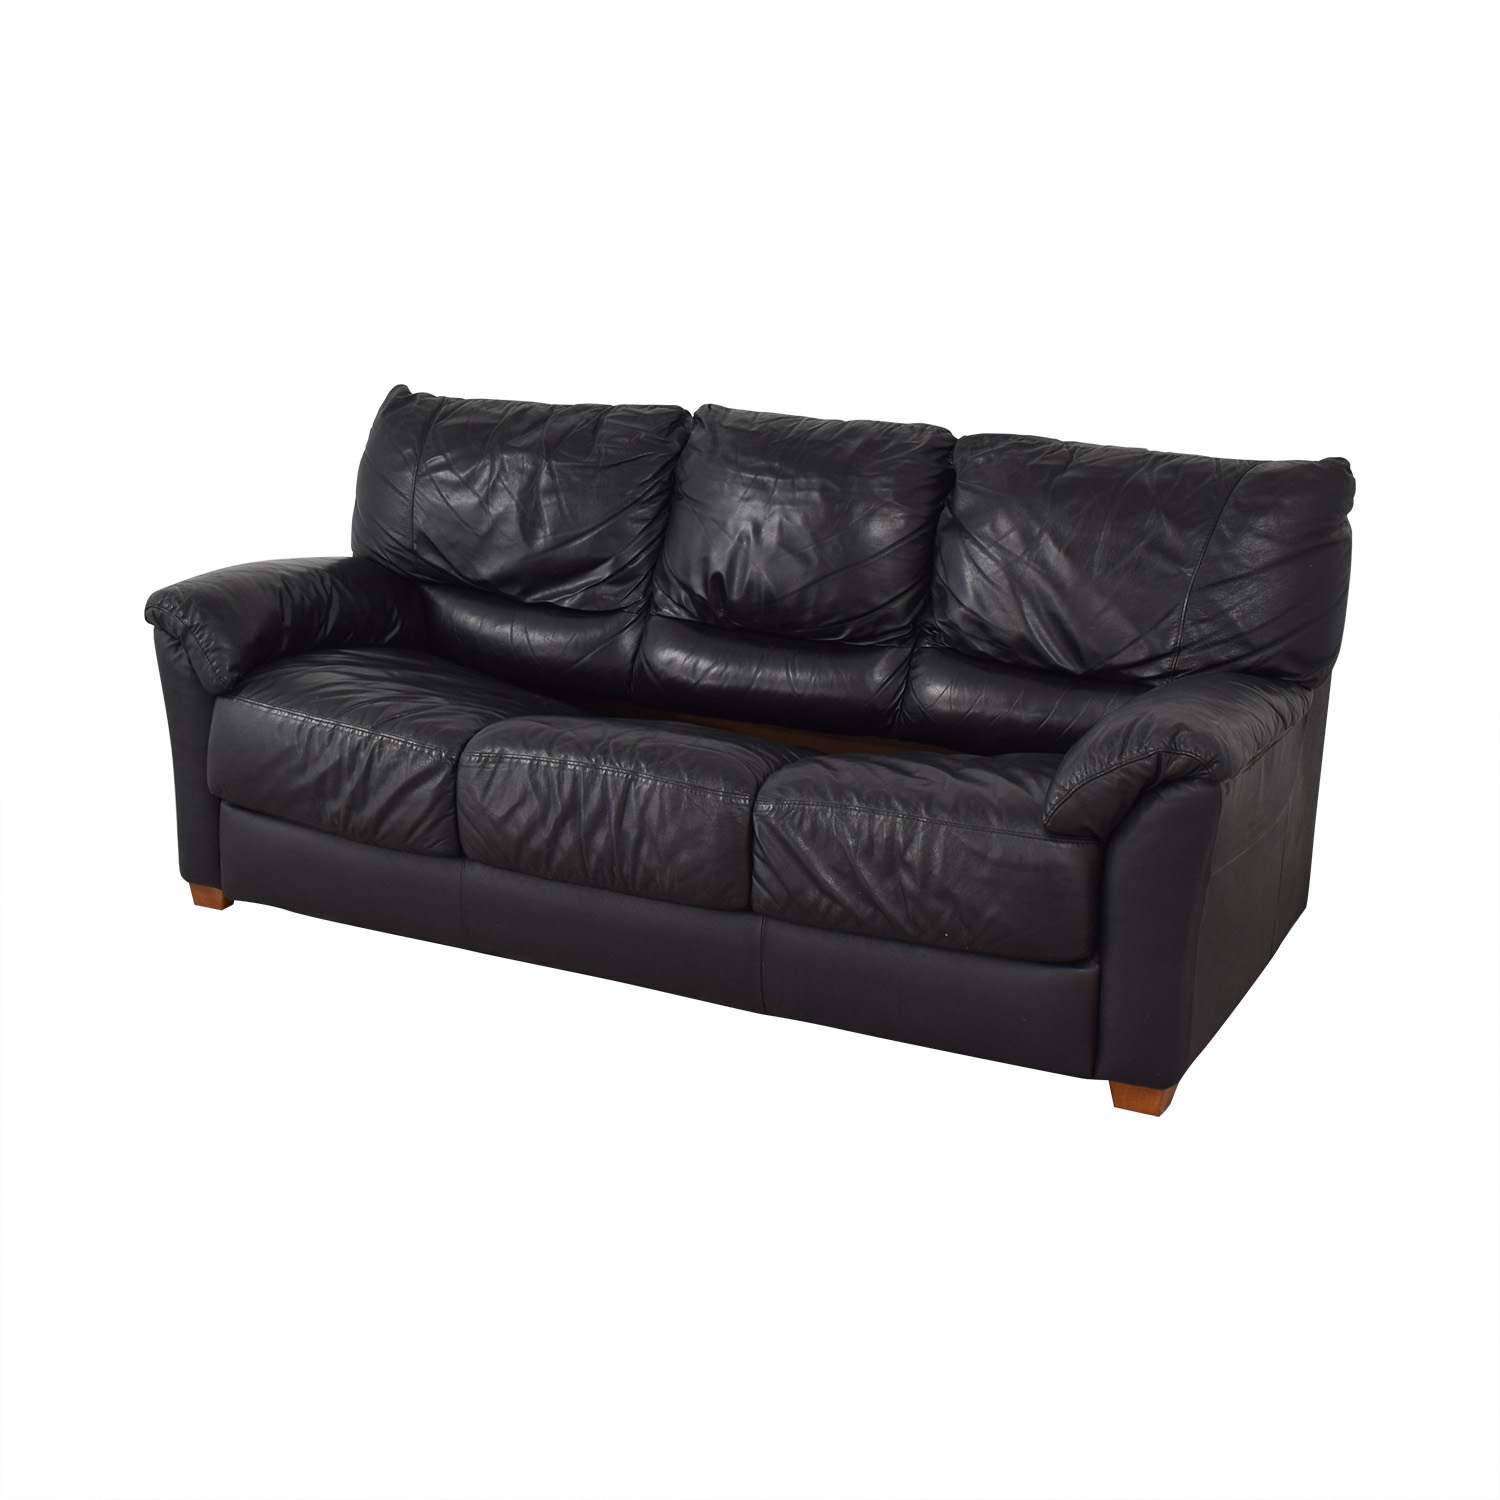 Black Three-Cushion Convertible Full Sleeper Sofa second hand